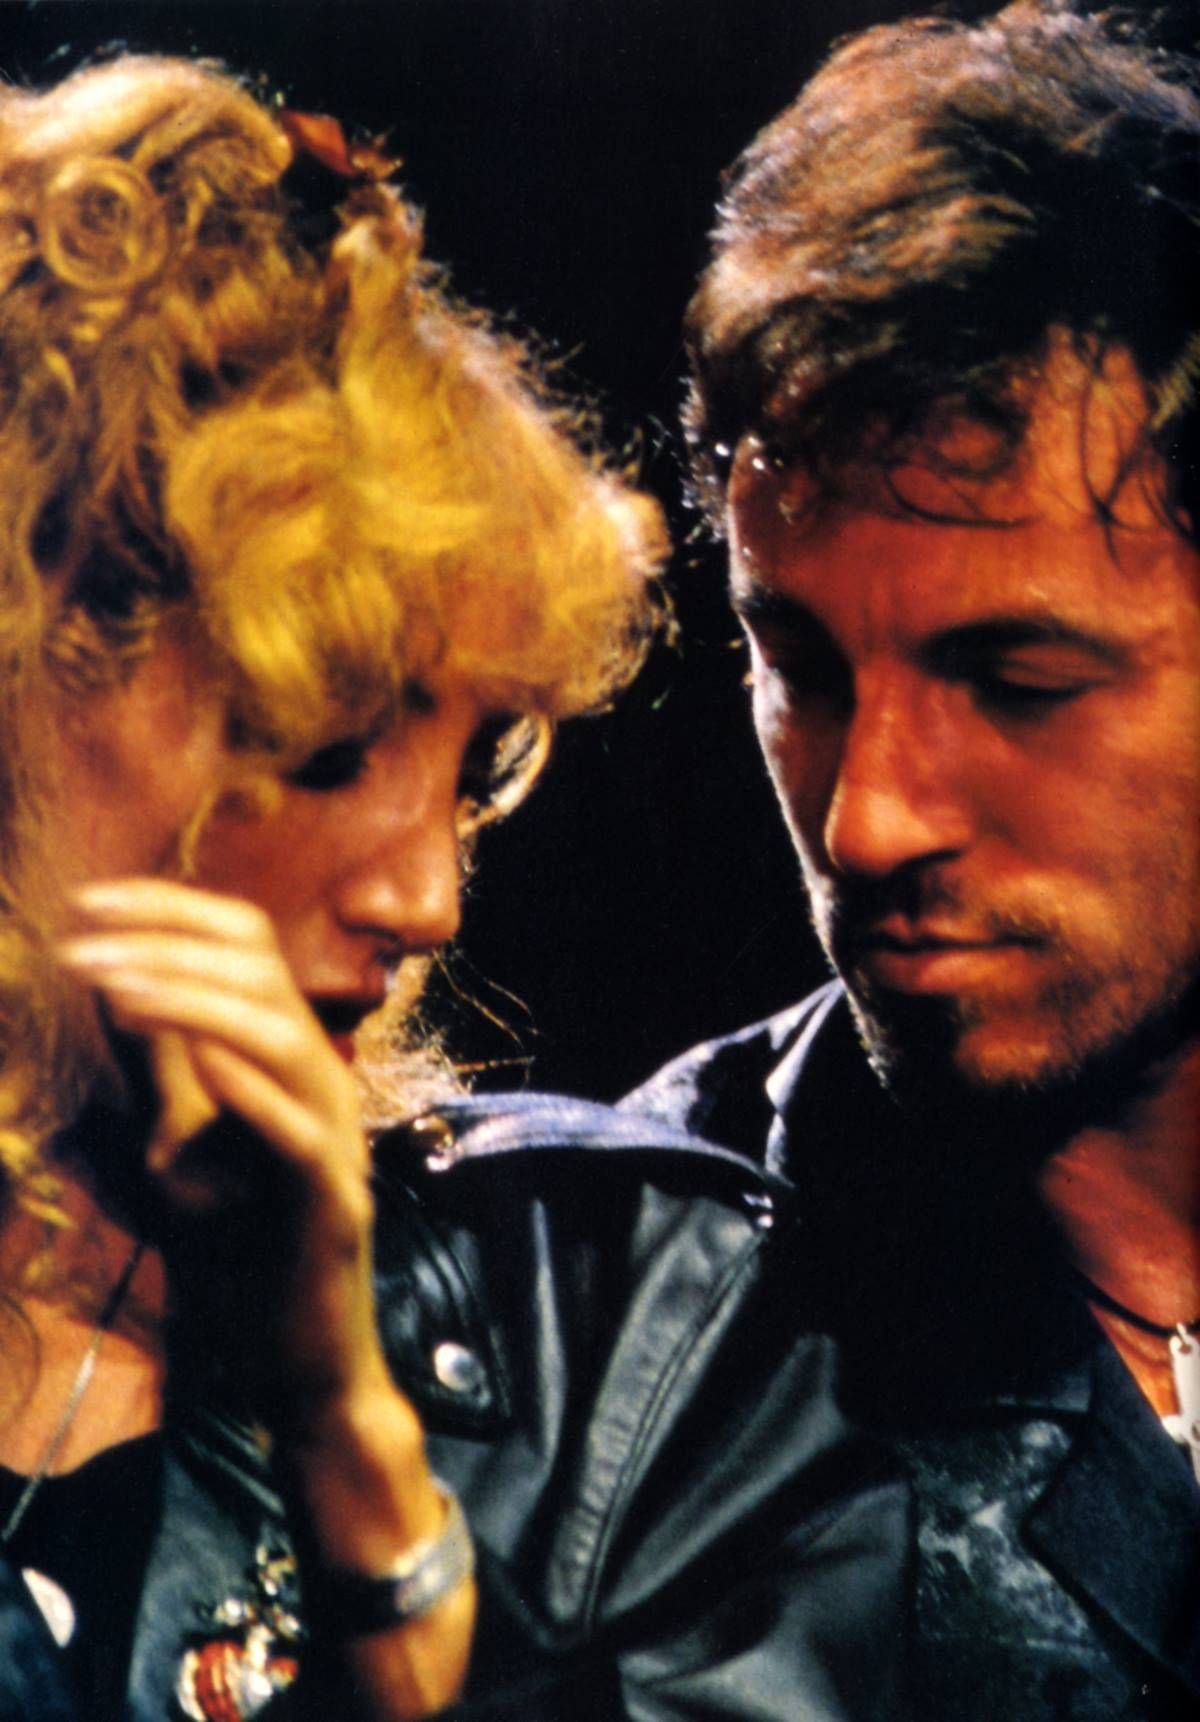 Bruce springsteen and patti scialfa paris 1988 bruce for Who has bruce springsteen been married to